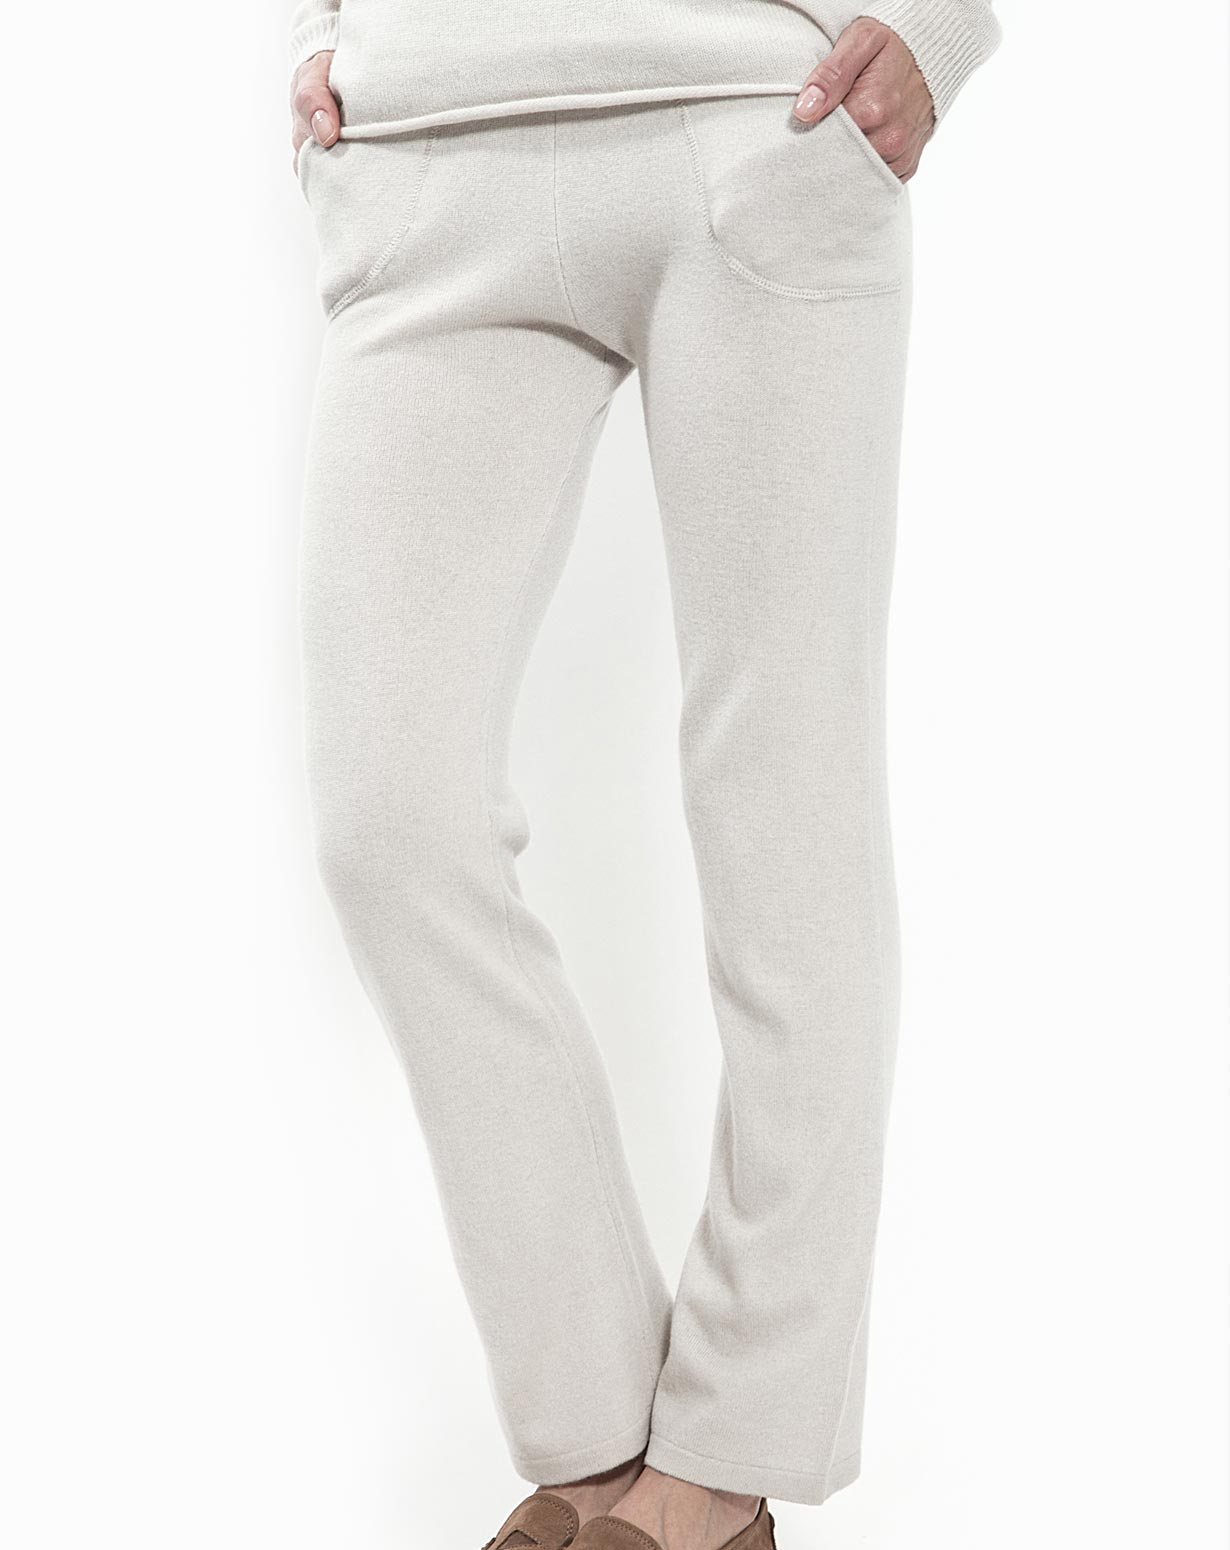 Cashmere Pants for Women womenu0027s pure cashmere lounge pants DPVPVLK